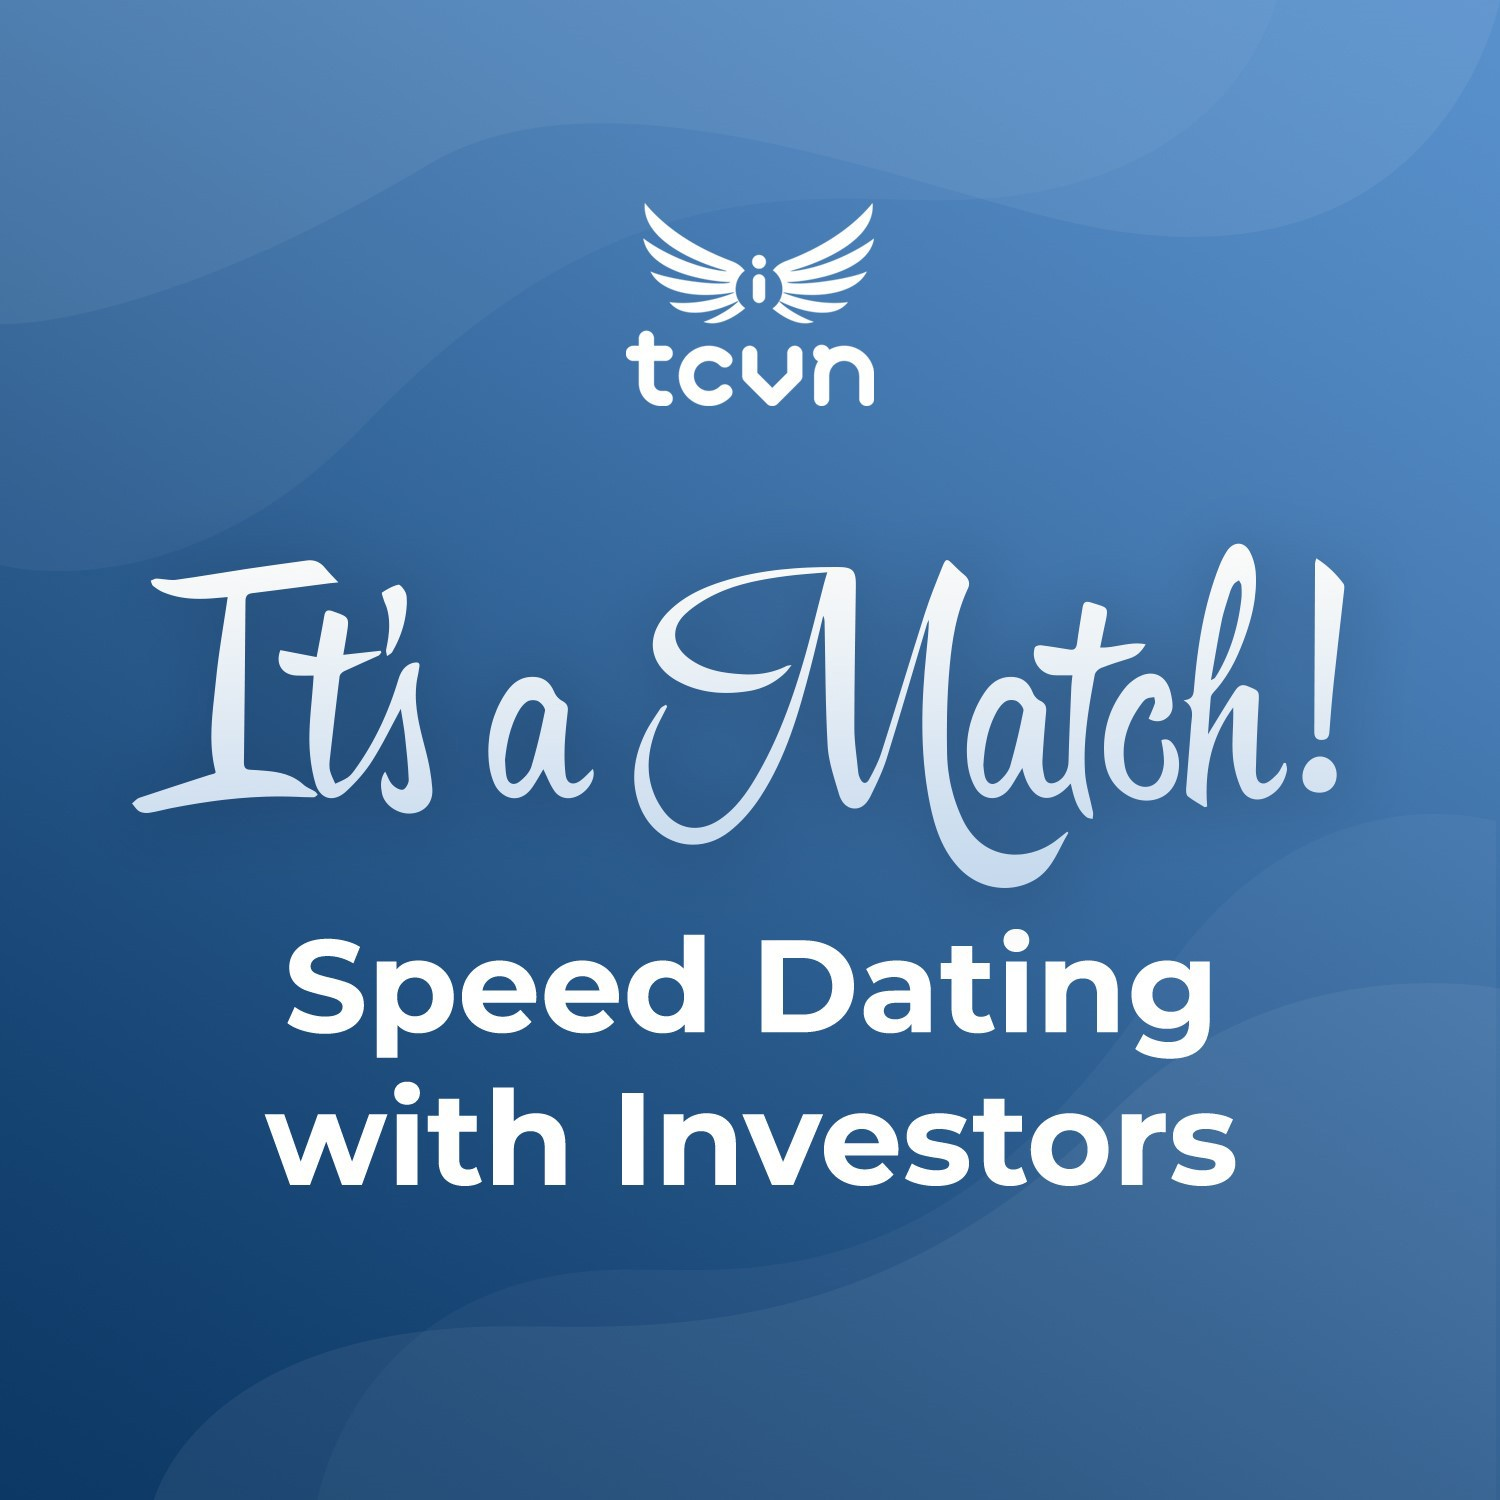 TCVN-Speed-Dating-With-Investors-Graphics